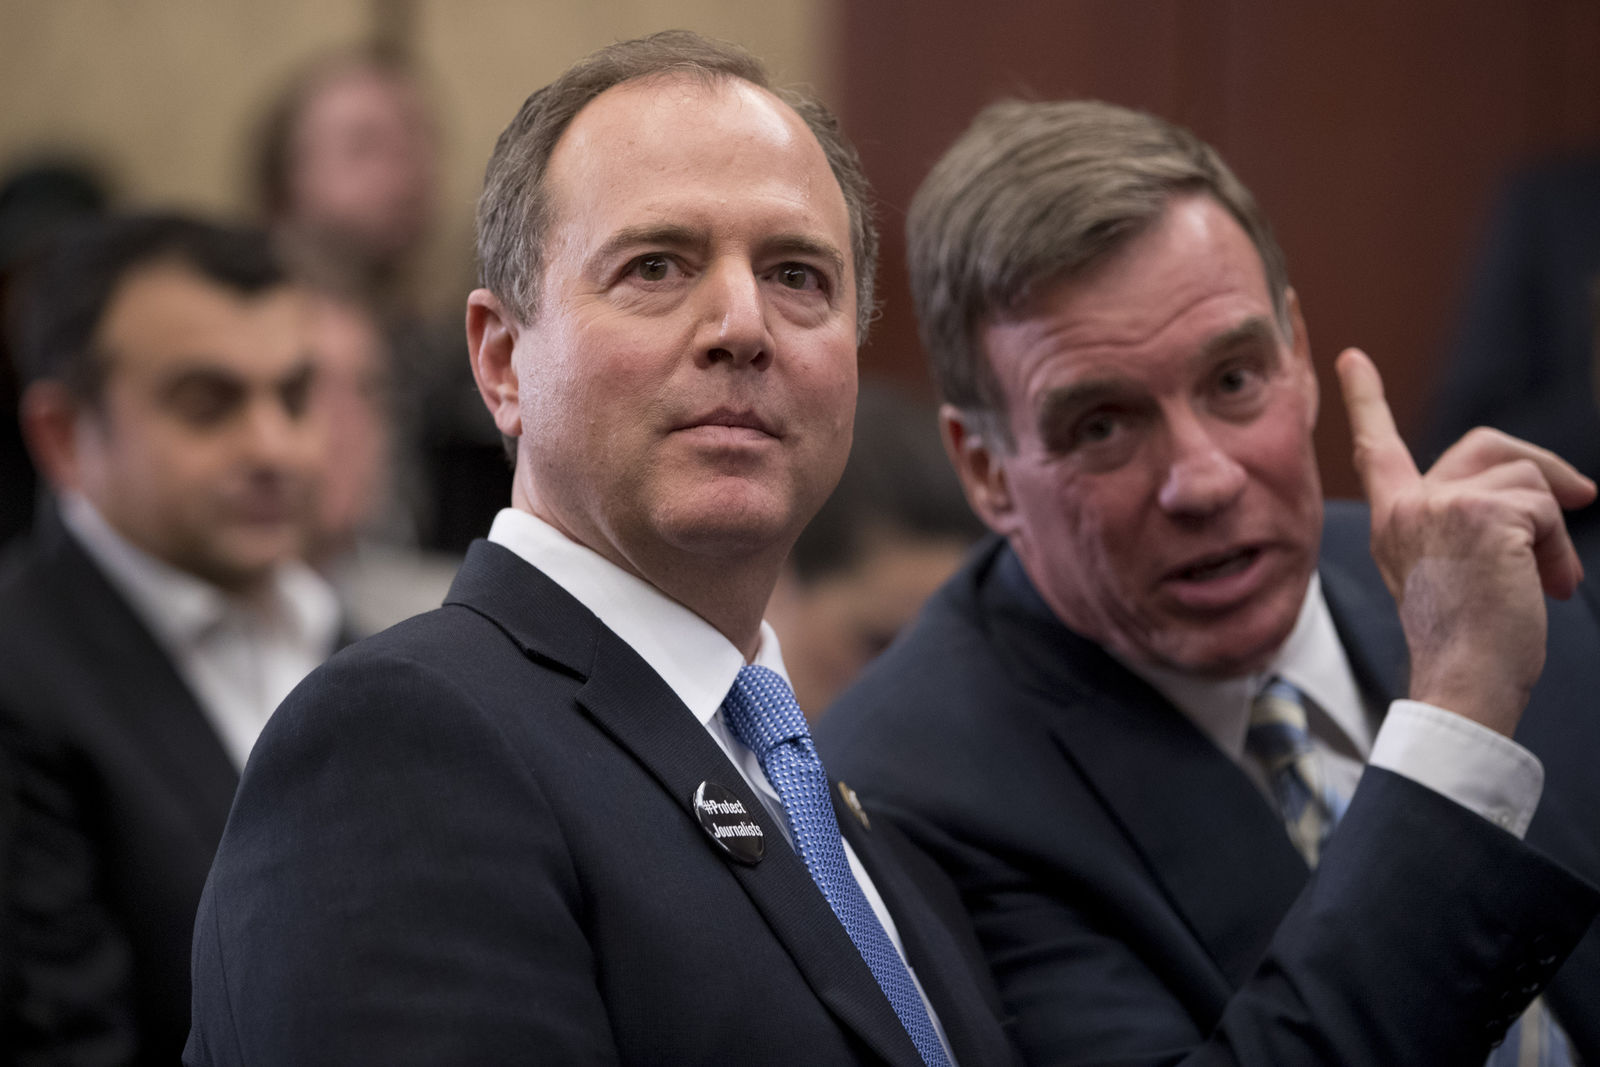 Adam Schiff, D-Calif., chairman of the House Intelligence Committee, left, speaks with Sen. Mark Warner, D-Va., at an event marking 100 days since the death of Jamal Khashoggi on Capitol Hill in Washington, Thursday, Jan. 10, 2019. (AP Photo/Andrew Harnik)